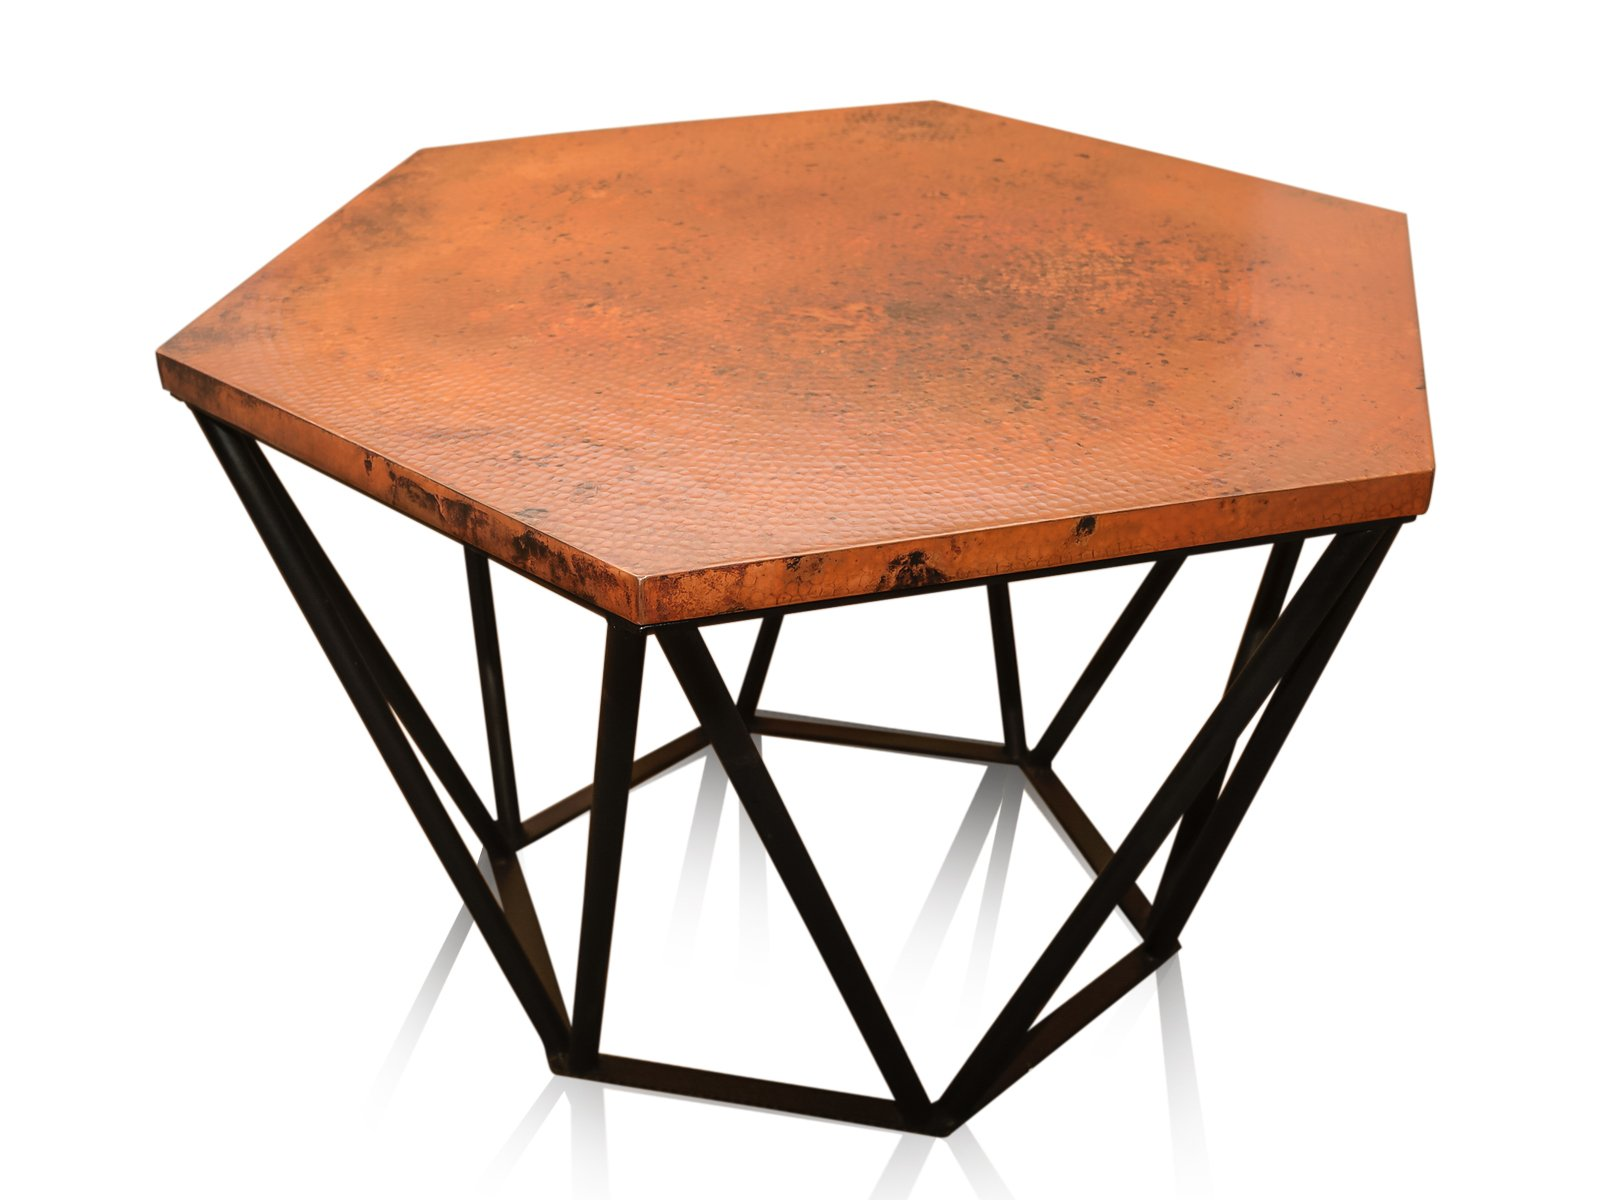 Copper Hammered Hexagonal Center Table